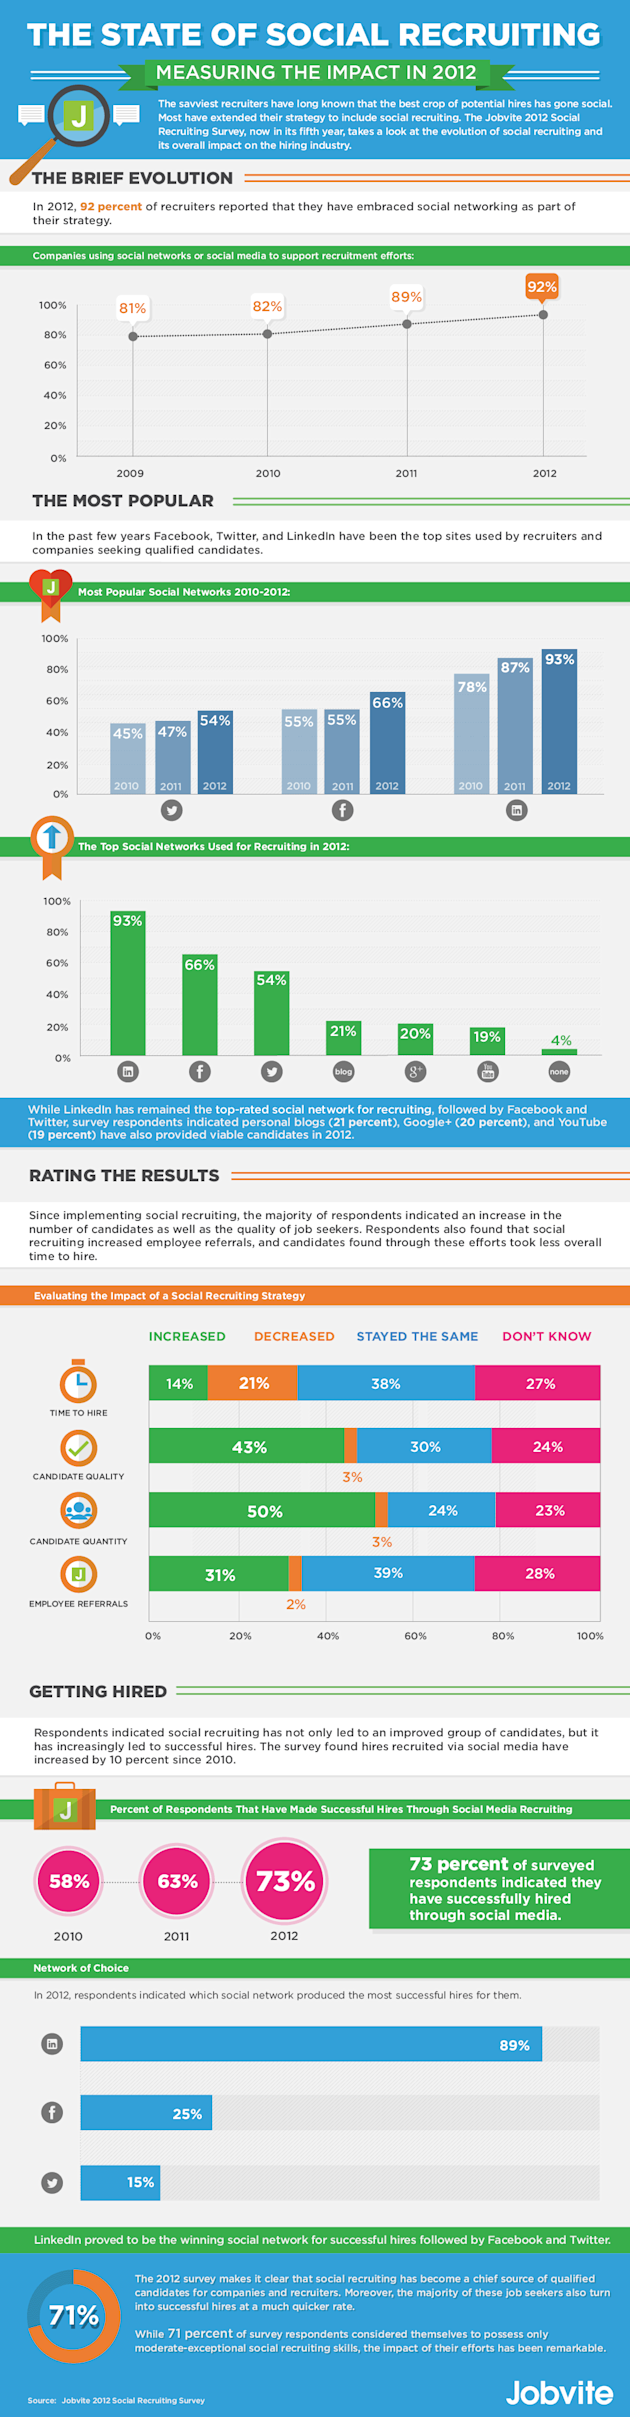 How Employers Use Social Media For Job Recruiting (Infographic) image info full